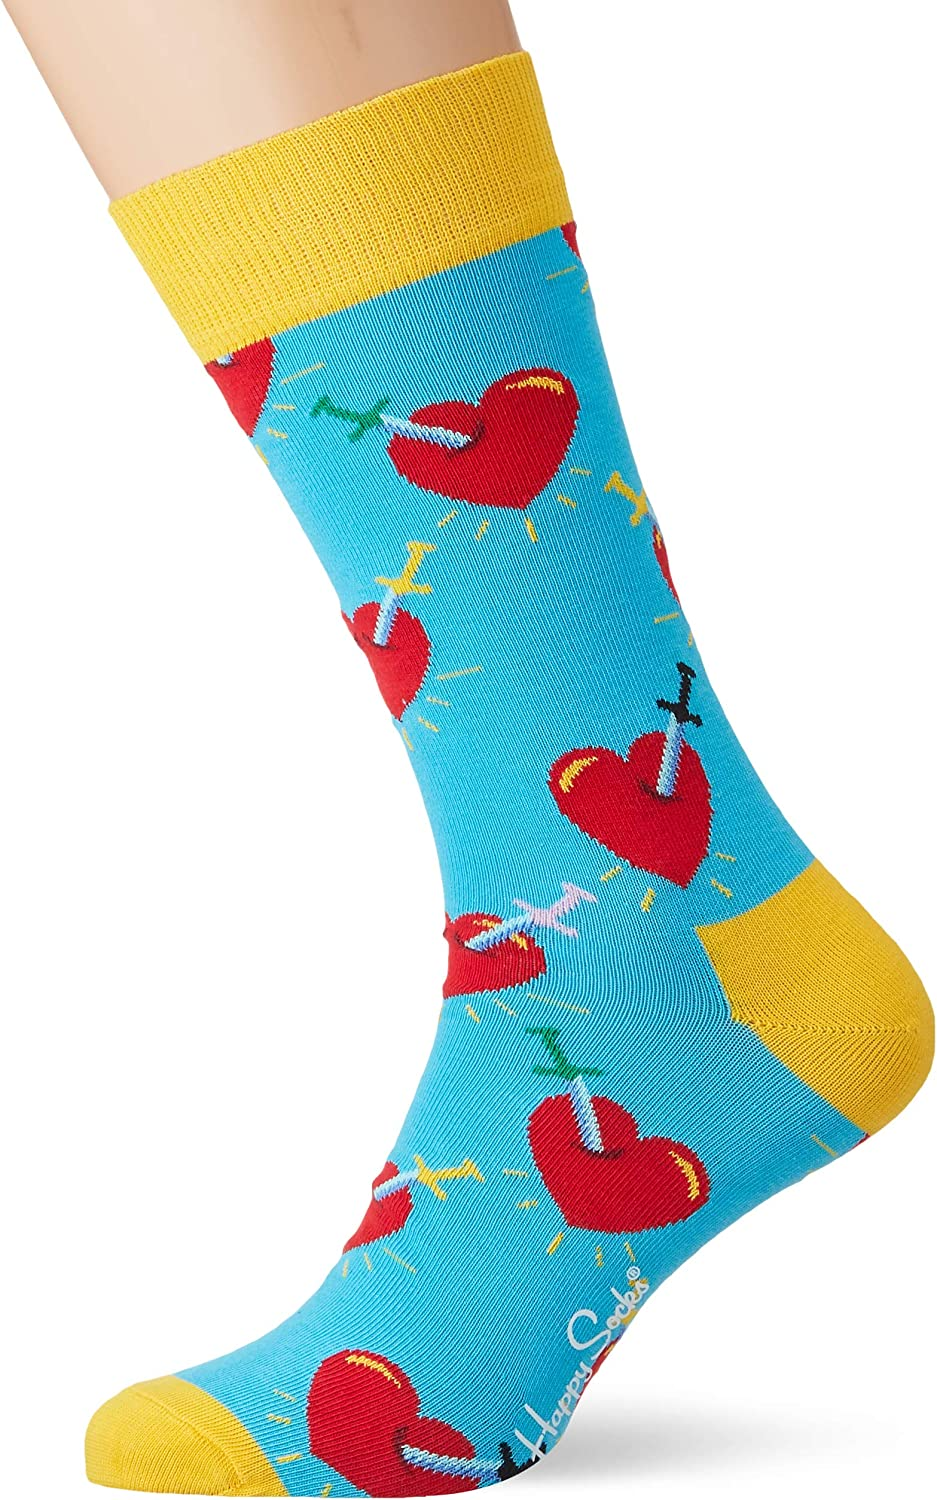 Happy Socks Broken Heart Courier shipping free Blue Blu Ranking integrated 1st place red Medium Large yellow